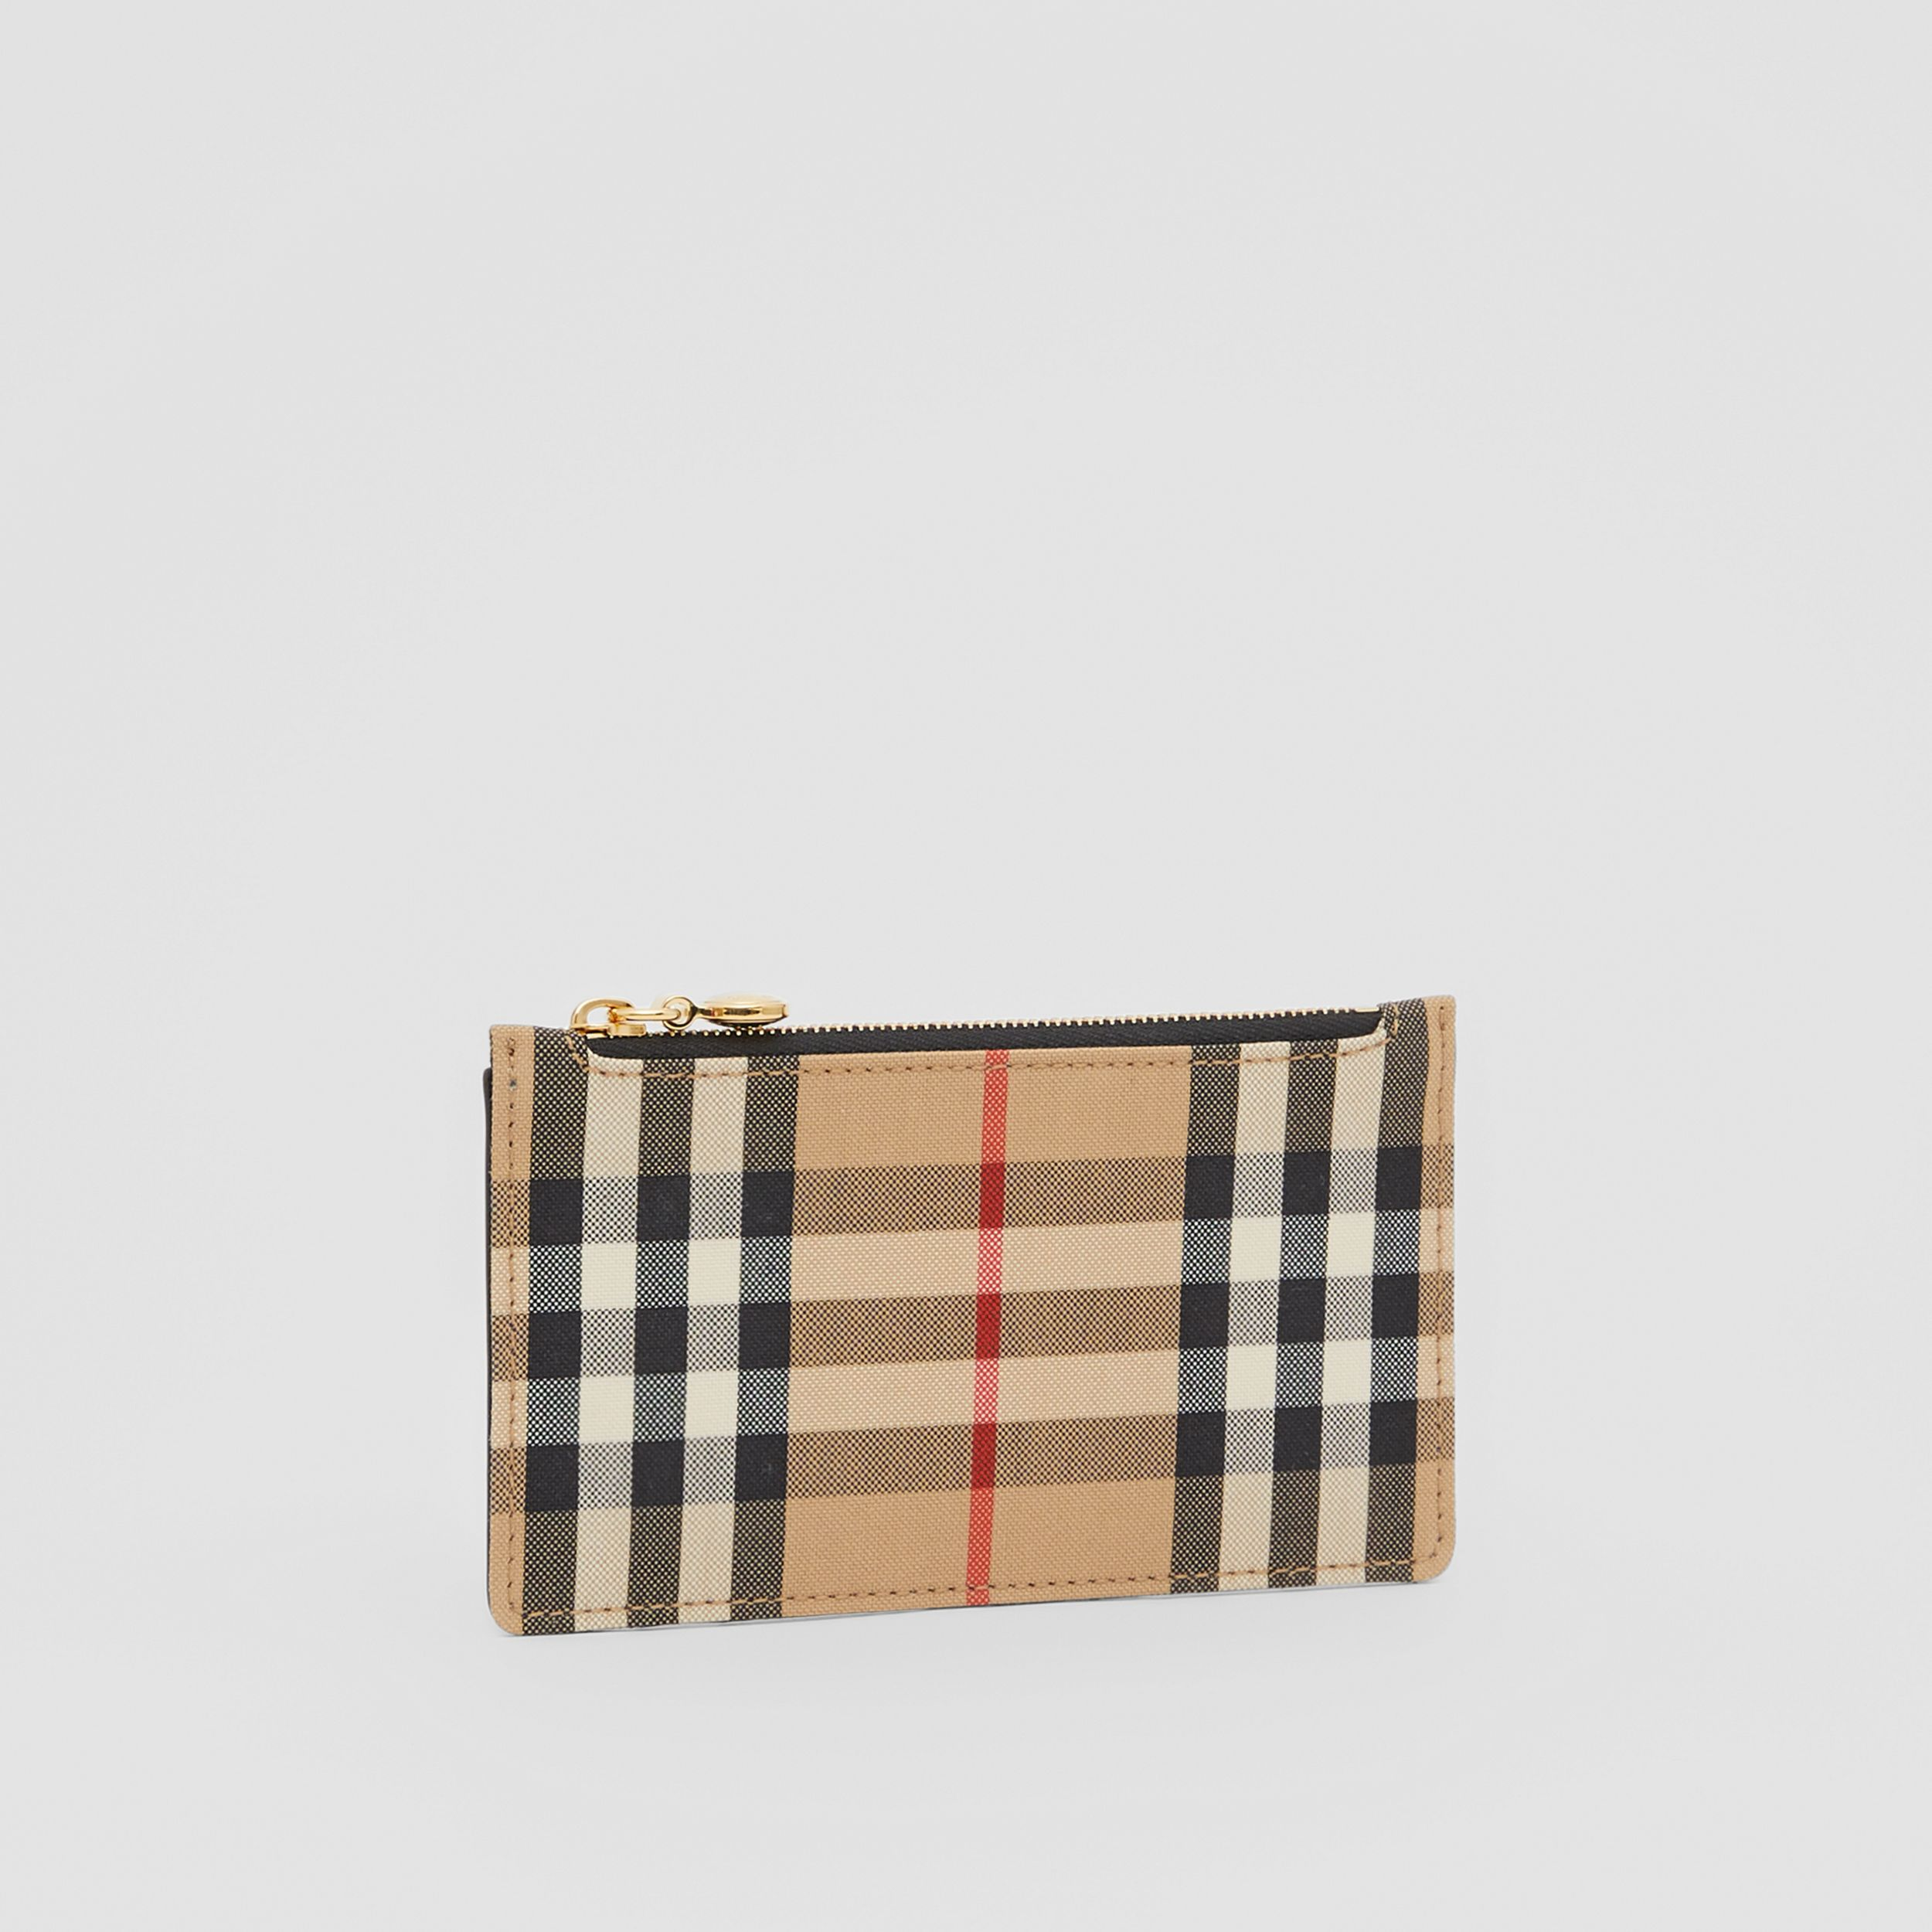 Vintage Check and Leather Zip Card Case in Black - Women | Burberry - 4